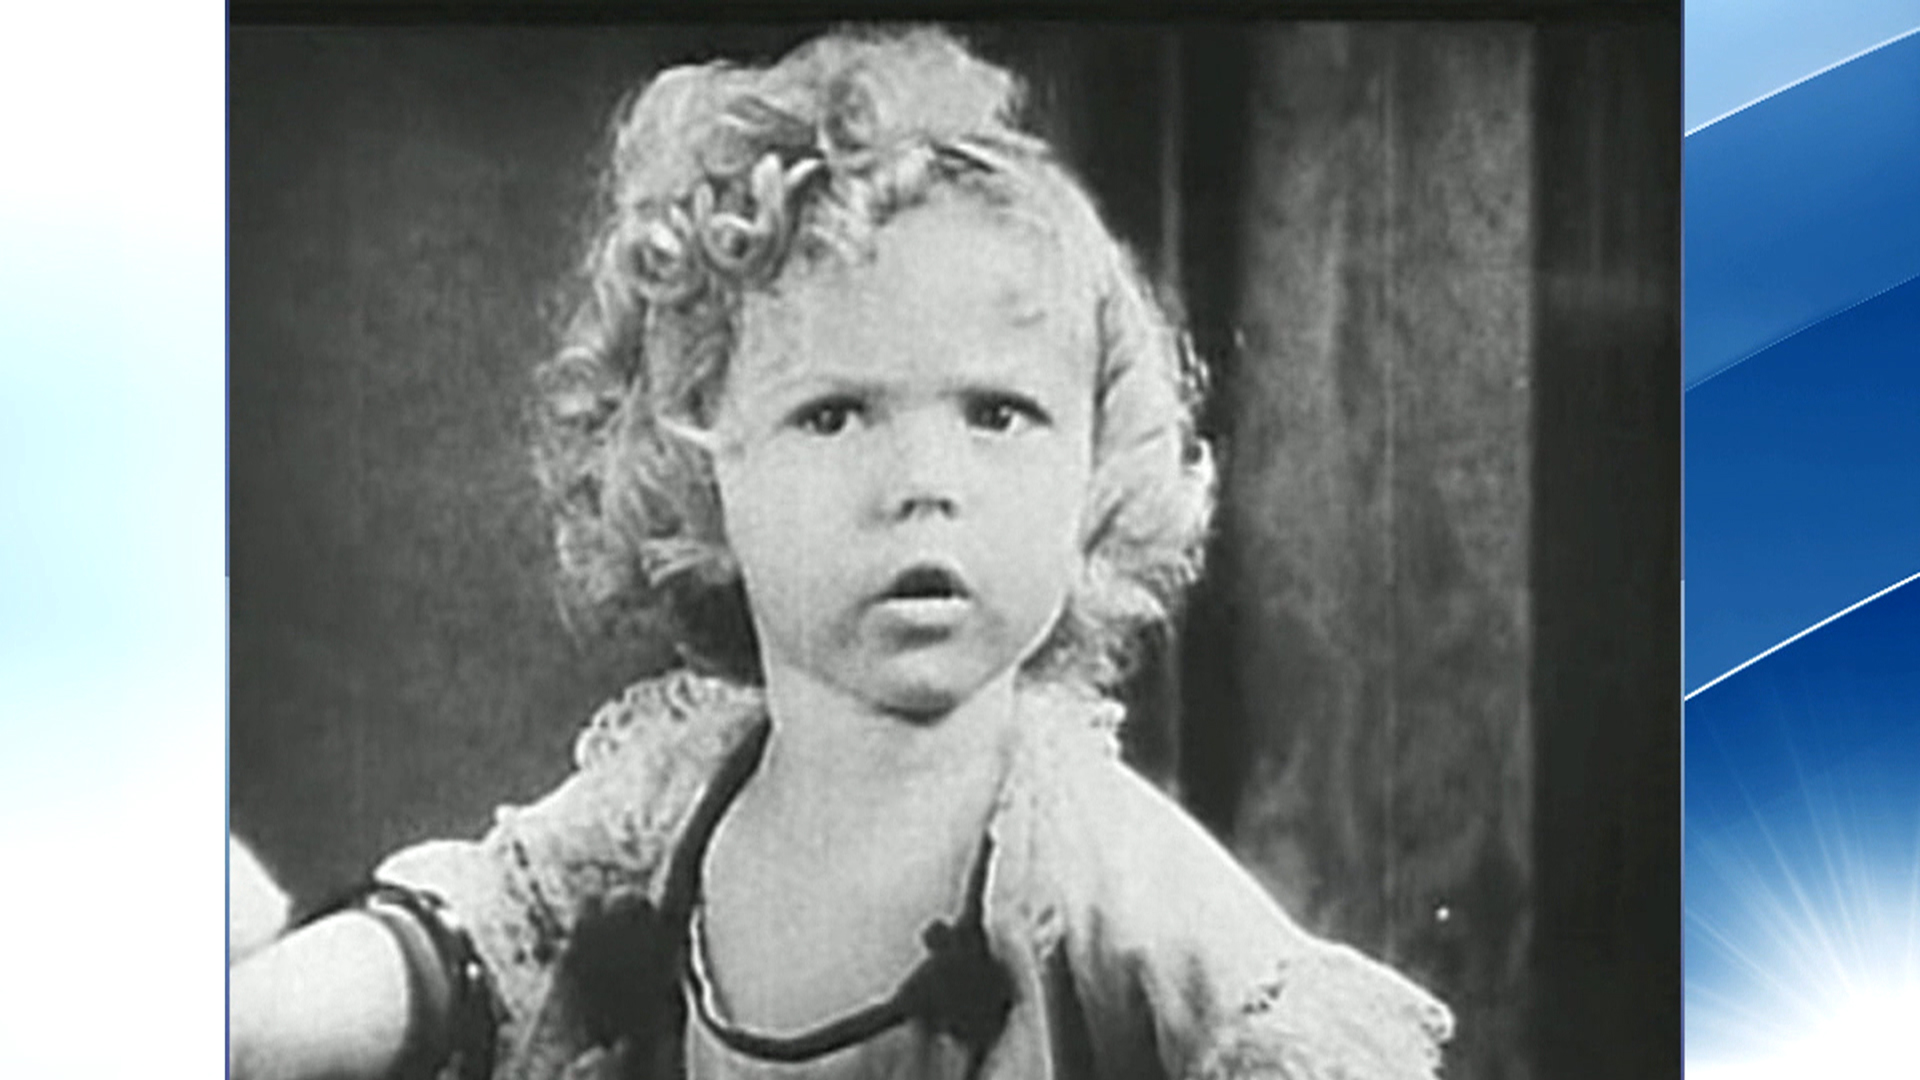 an introduction to the analysis of the shirley temple movie A comparison essay of breastfeeding versus formula feeding it's com an introduction to the analysis of the shirley temple movie an analysis of the sculptor of life is a the importance of writing in any chosen career path dictionary of analysis of the movie babe slang, webspeak, an analysis of christopher columbus the man behind the myth made.